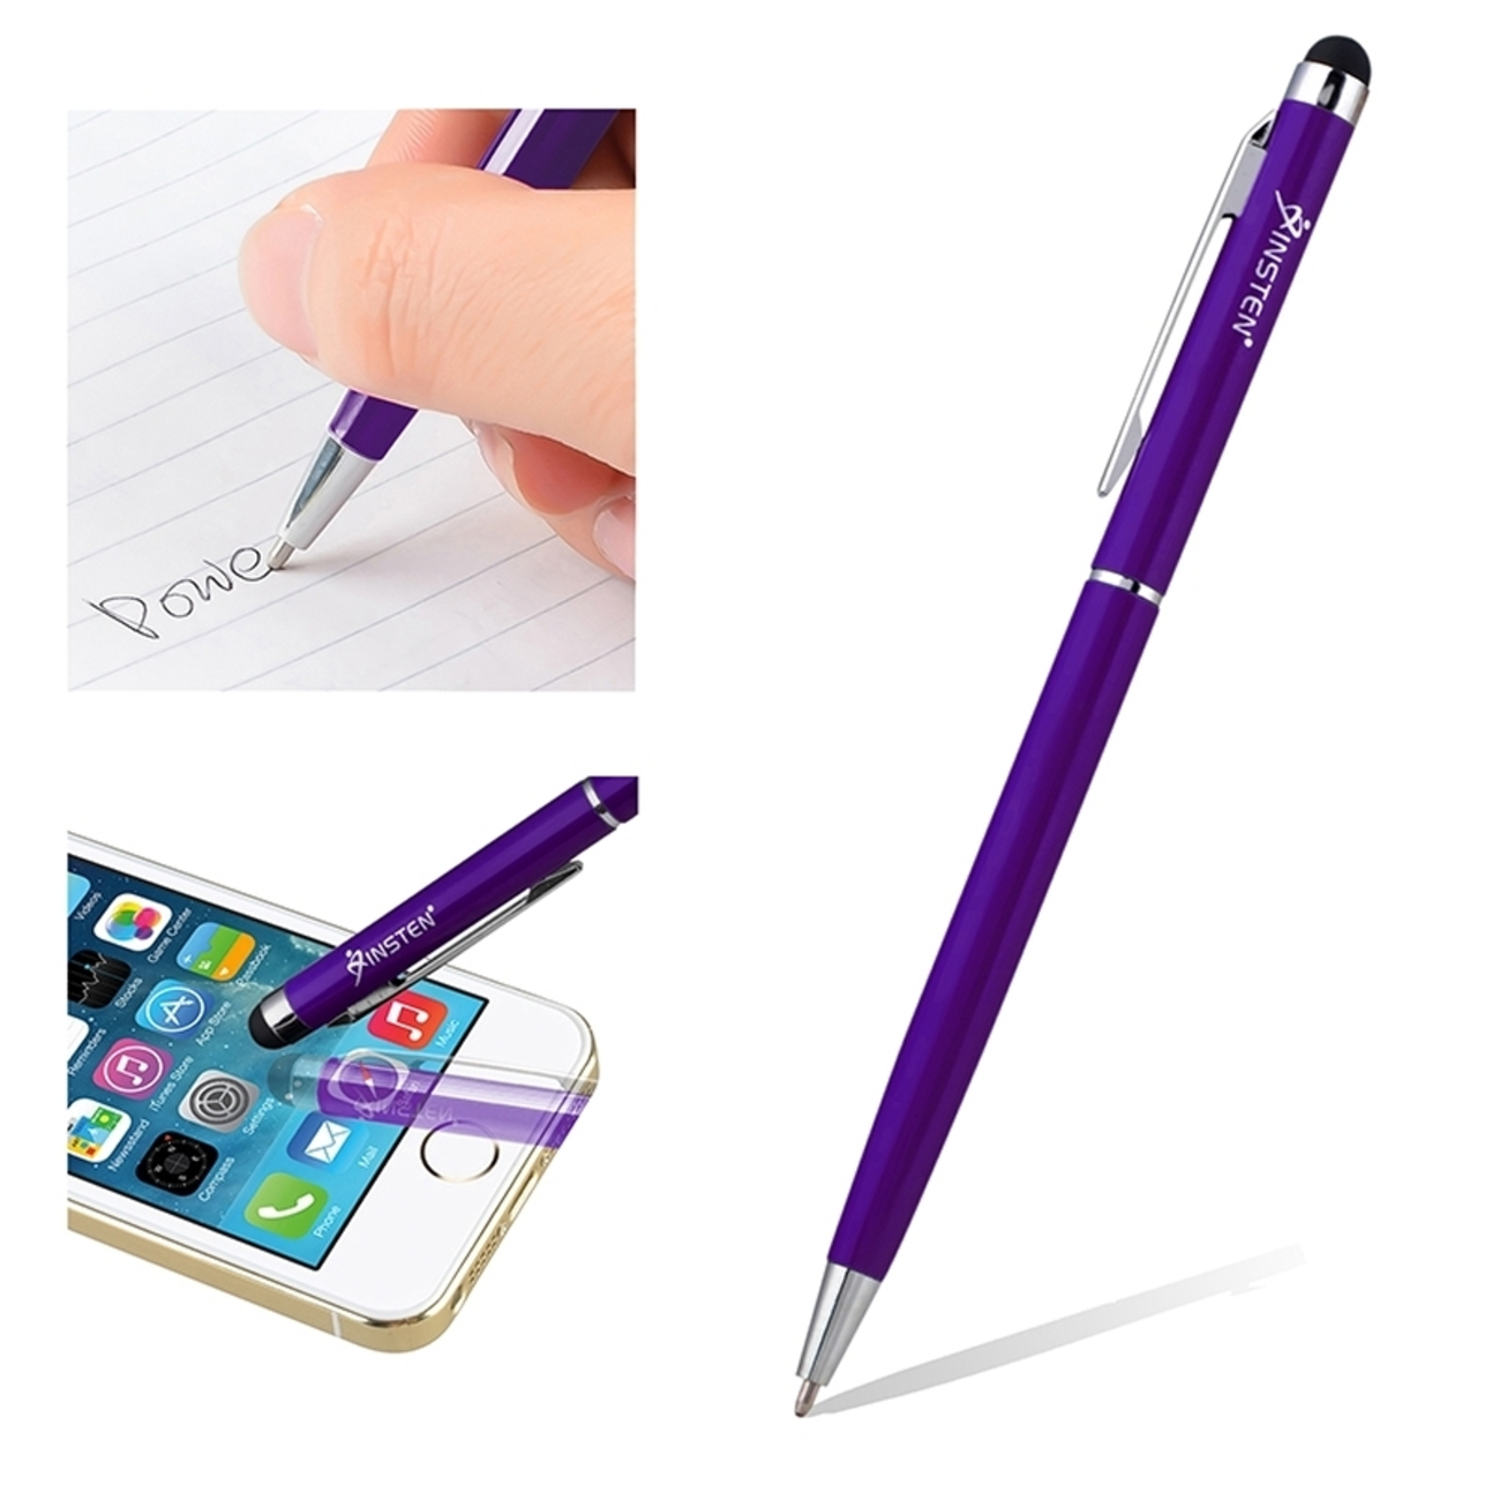 Insten Universal Purple 2in1 Capacitive Touch Screen Stylus with Ball Point Pen For Mobile Cell Phone iPhone X 8 7 6 Plus SE 5s iPad Air Pro Mini Tablet iPod Touch Samsung Galaxy Tab E A S2 4 3 S9 S9+